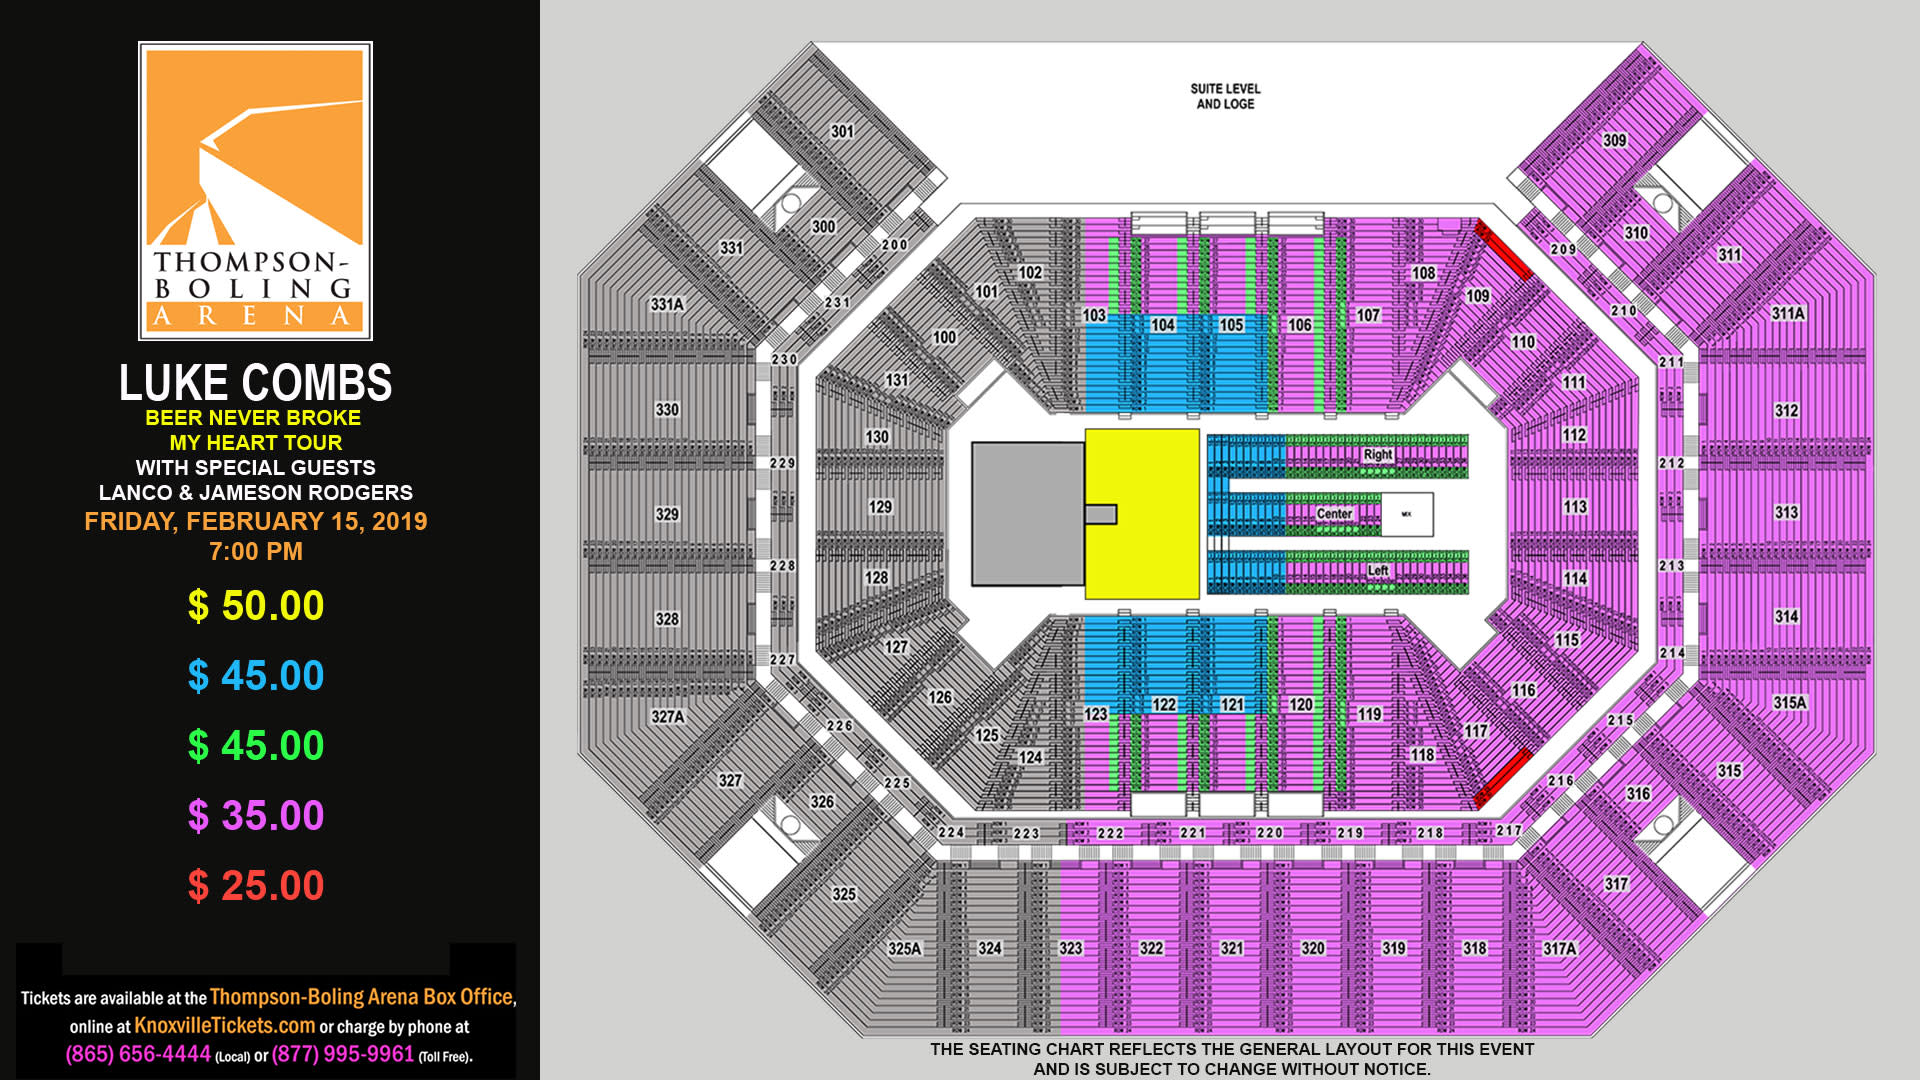 Luke Combs 2019 Seating Map